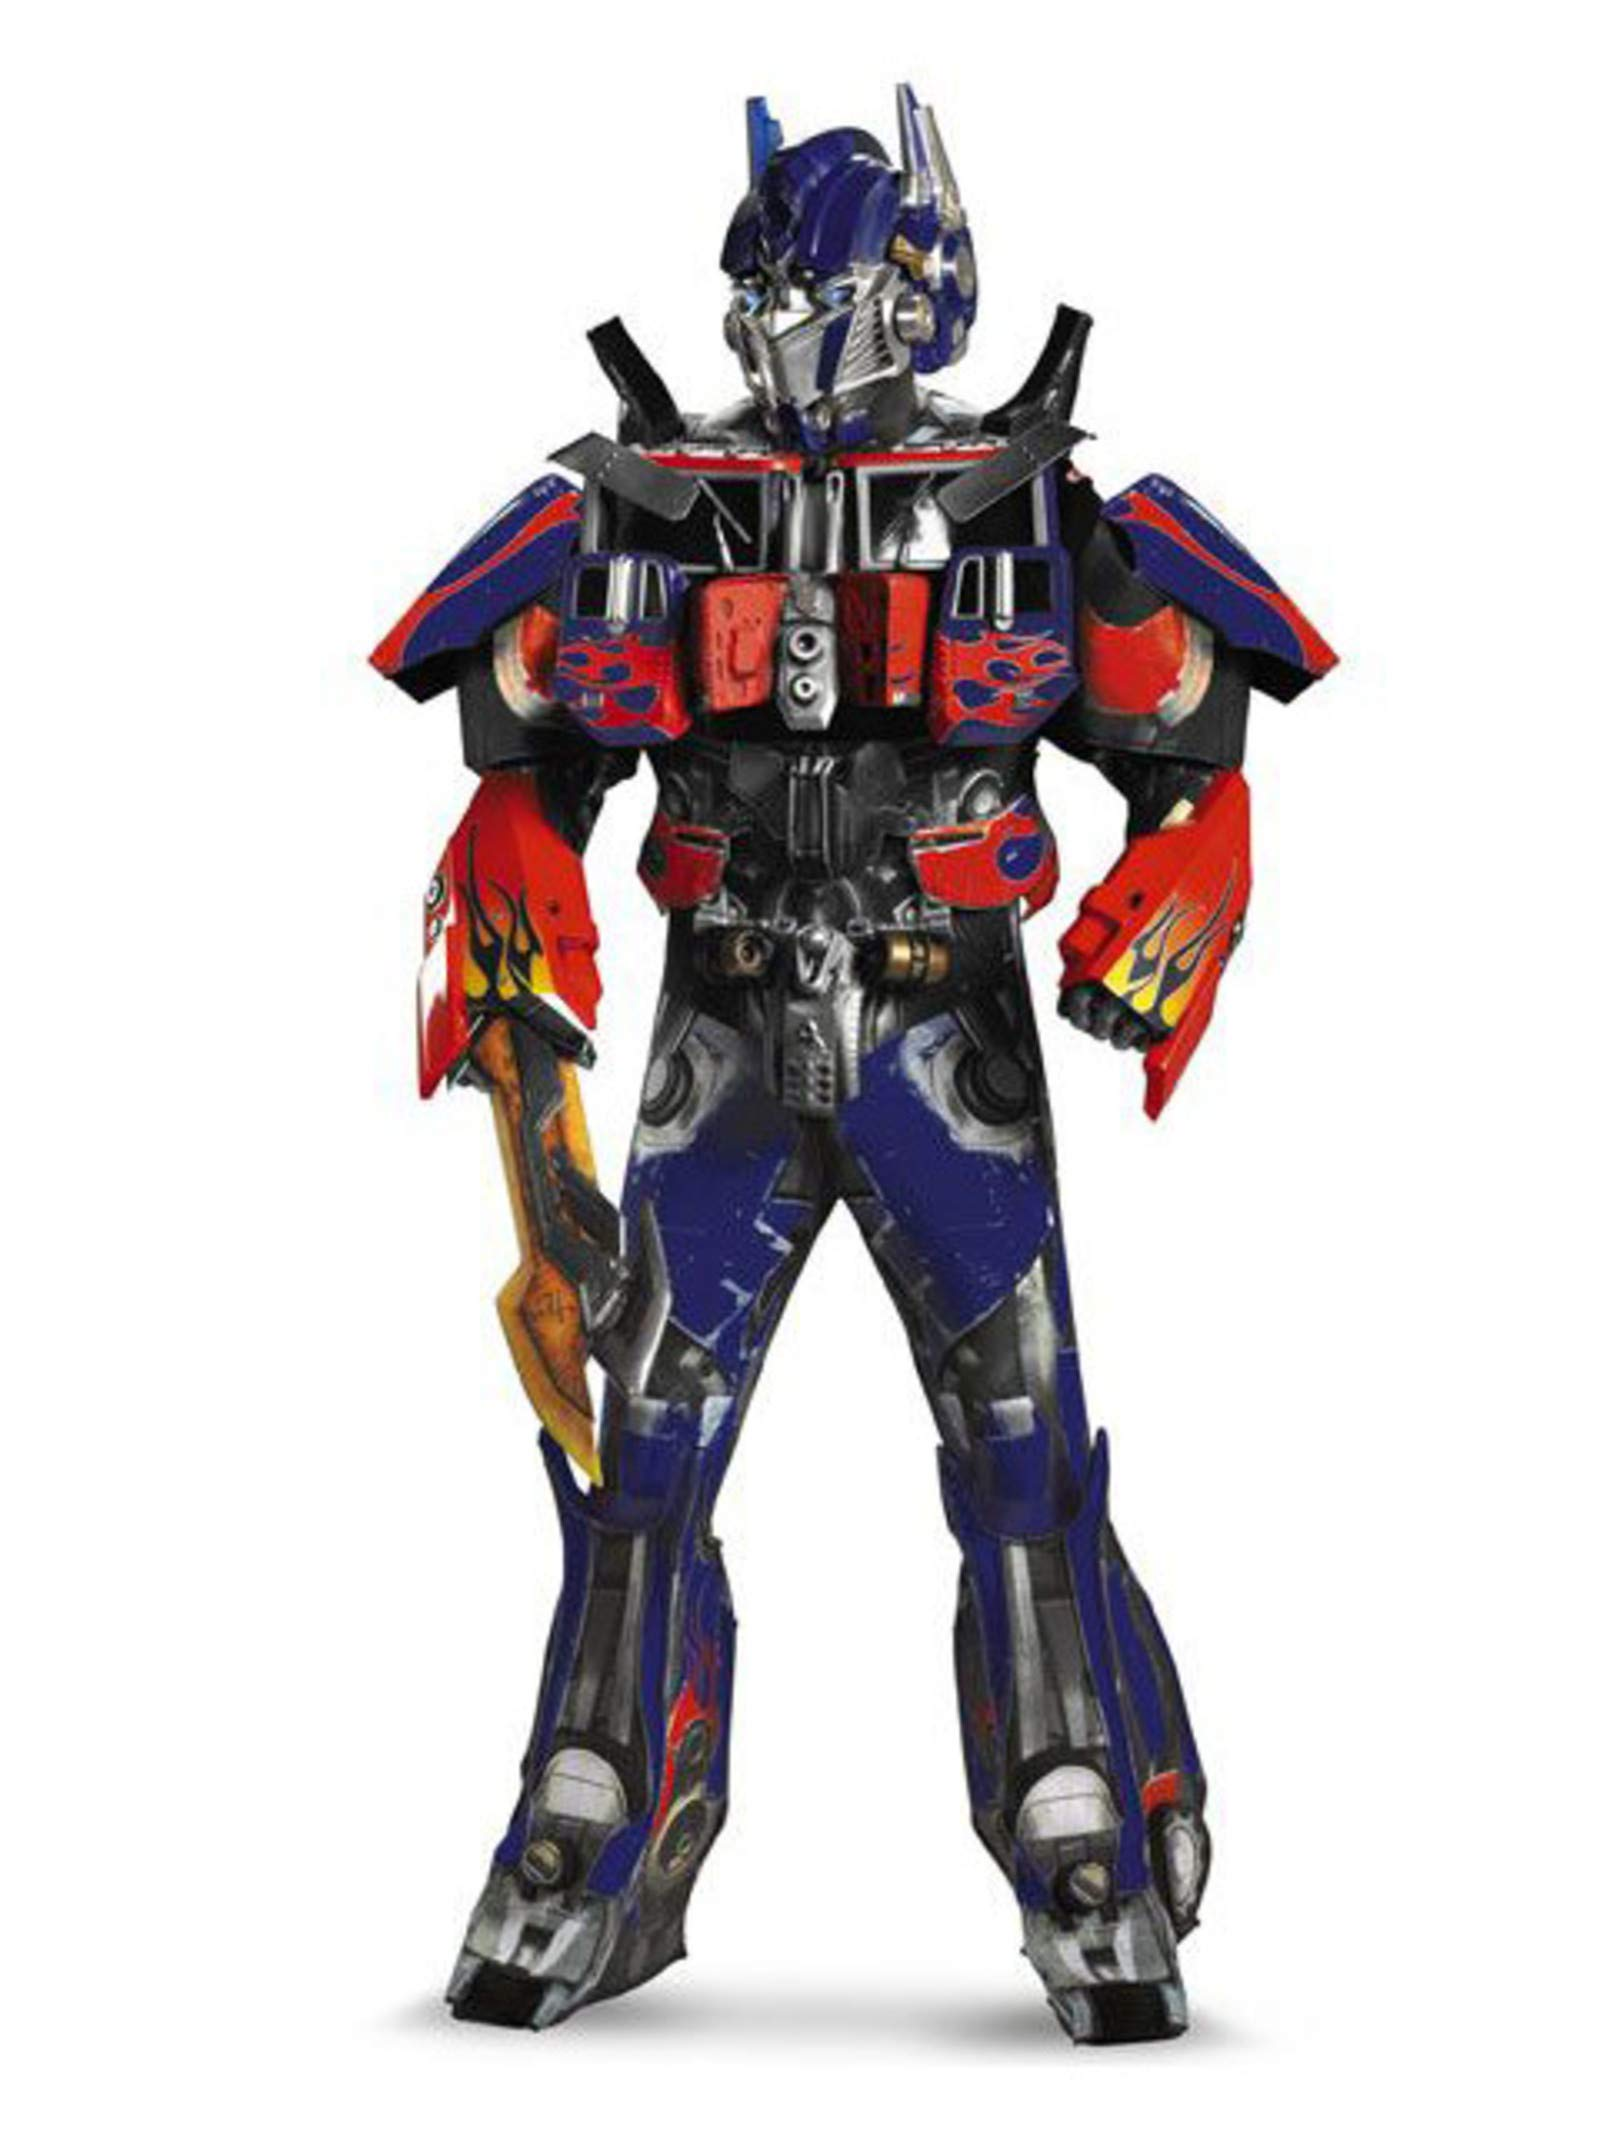 Disguise Men's Hasbro Transformers Age Of Extinction Movie Optimus Prime Theatrical with Vacuform Plus 3D Costume, Blue/Red, X-Large/42-46 by Disguise